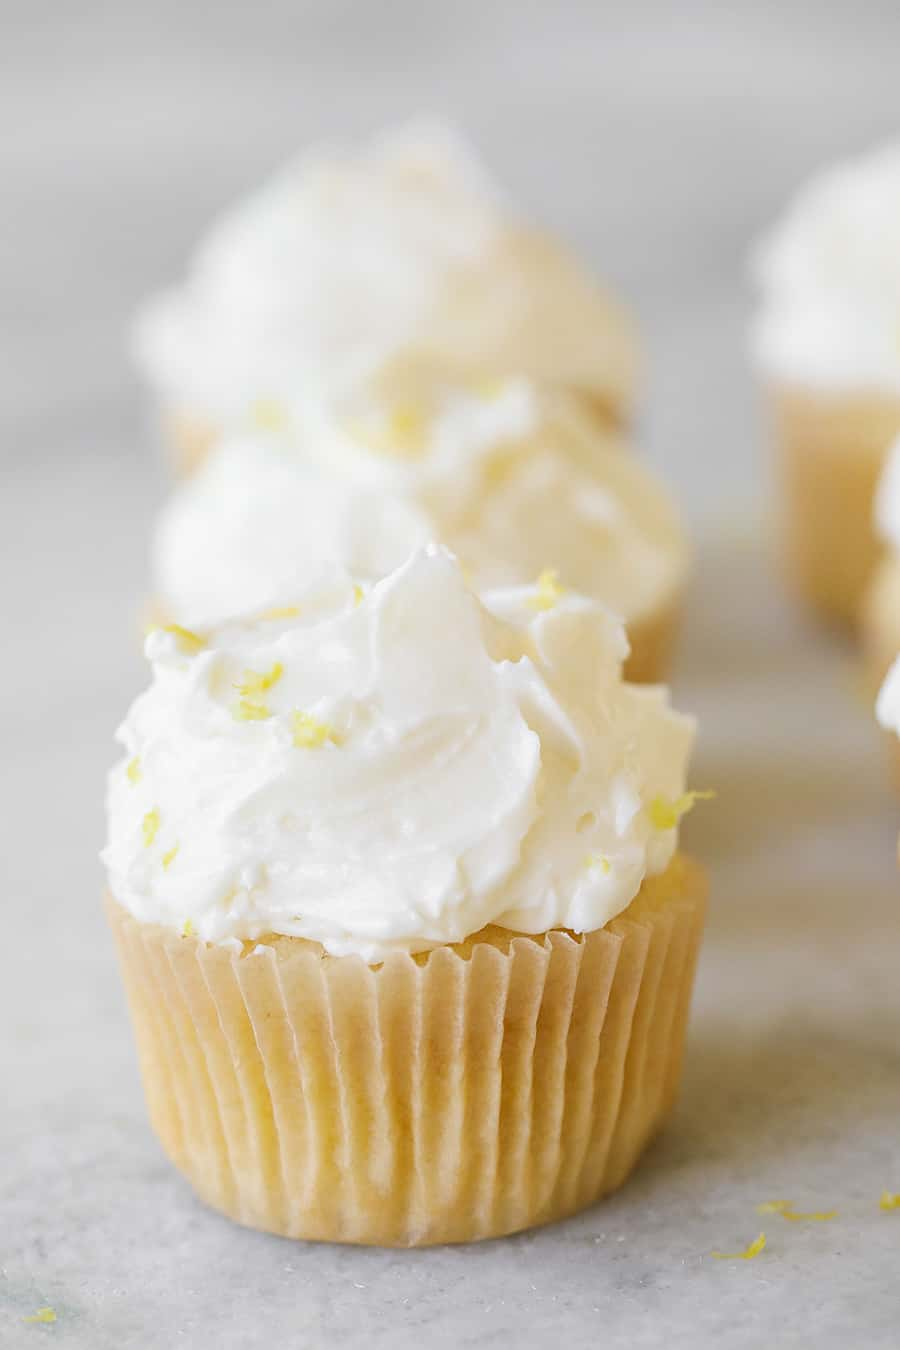 One Lemon Cupcake with Buttercream Meringue Frosting